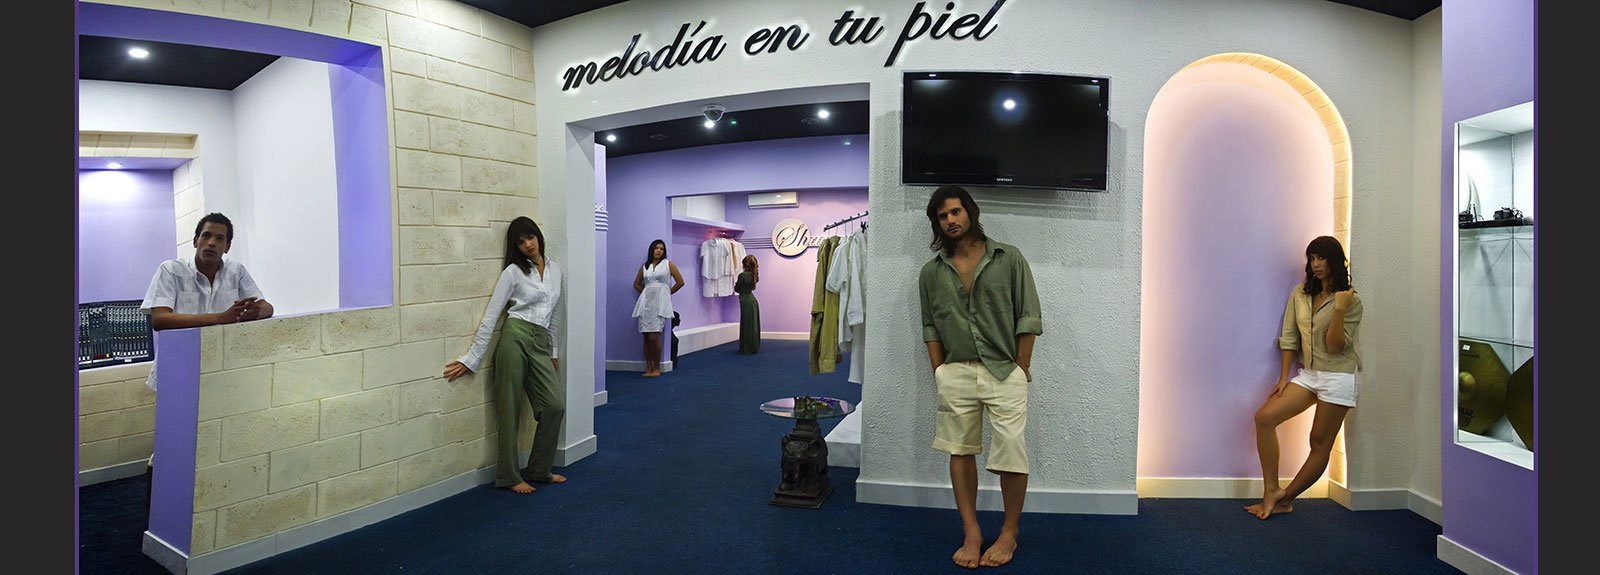 Models in a shop painted in white and violet